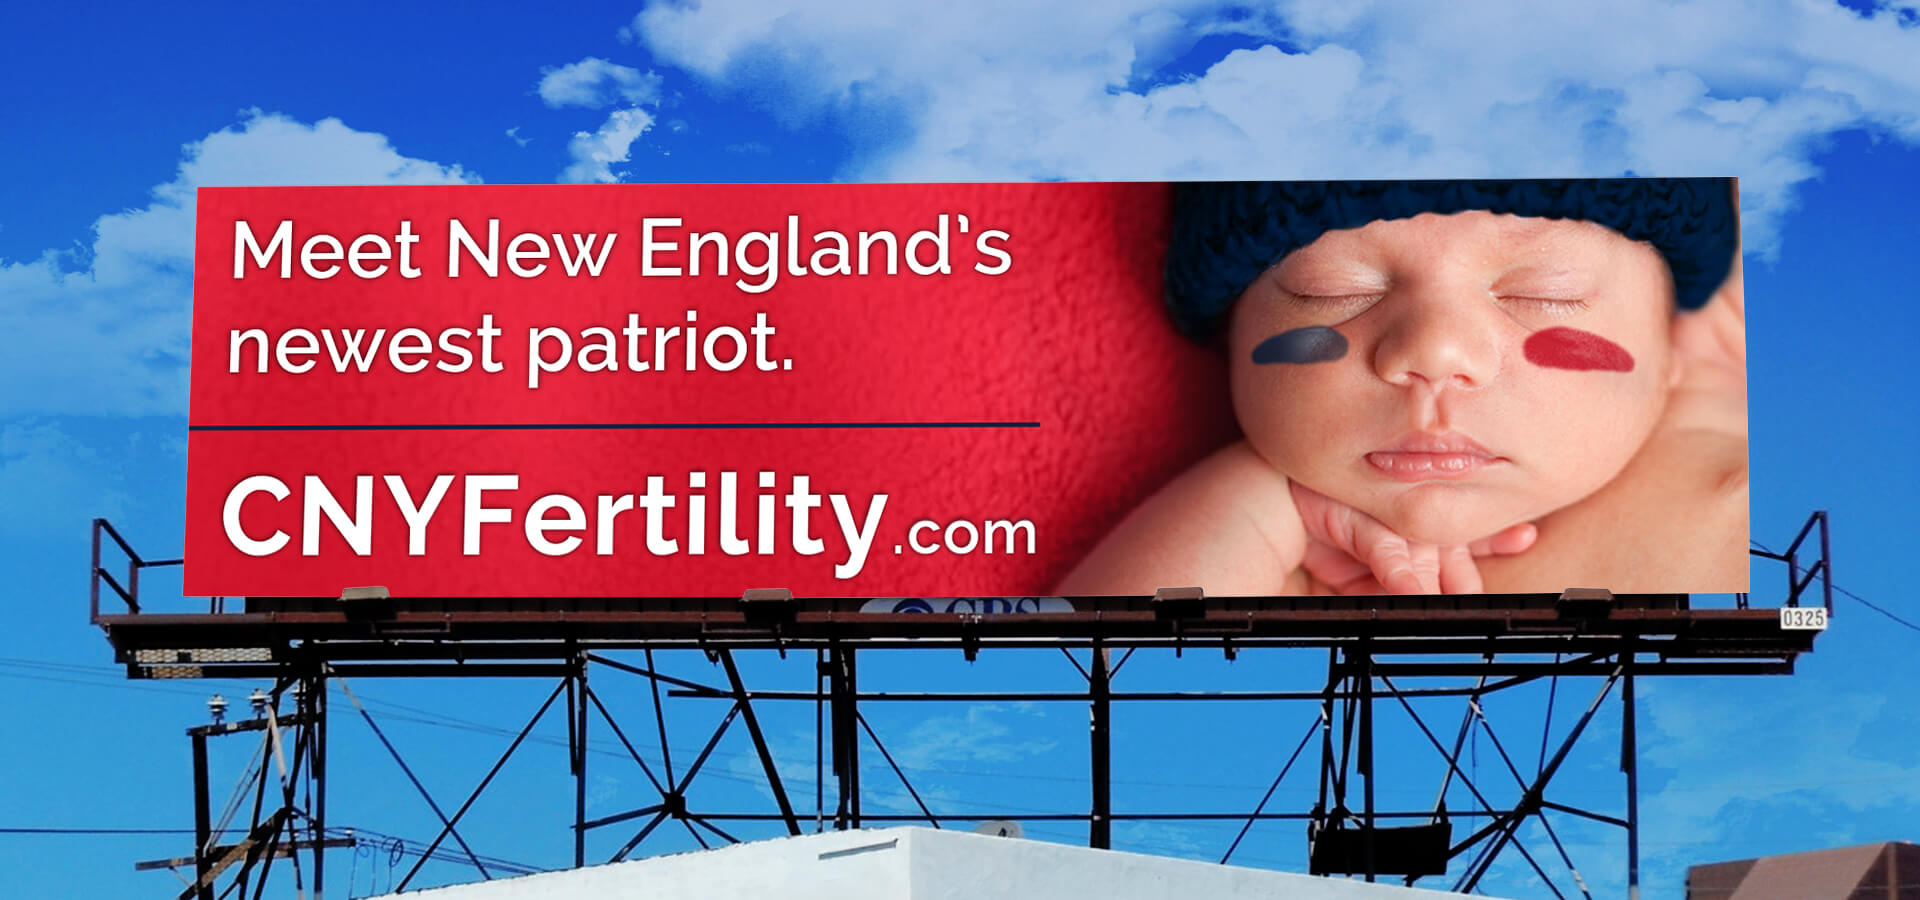 CNY Fertility Billboard in Boston, MA